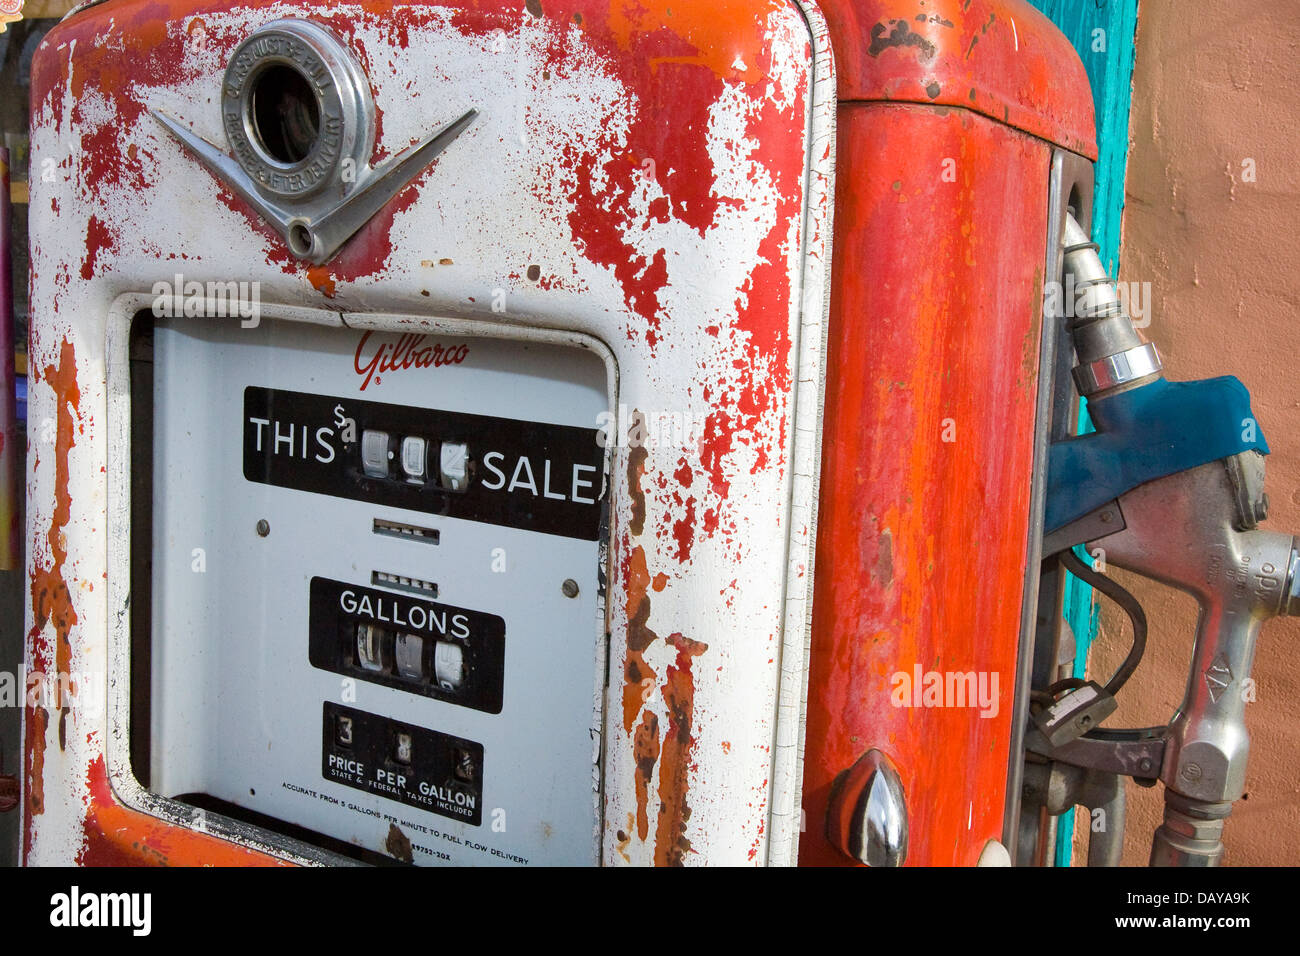 Ö¡ gas stock photos Ö¡ gas stock images alamy old style gilbarco gas pump madrid new united states of america